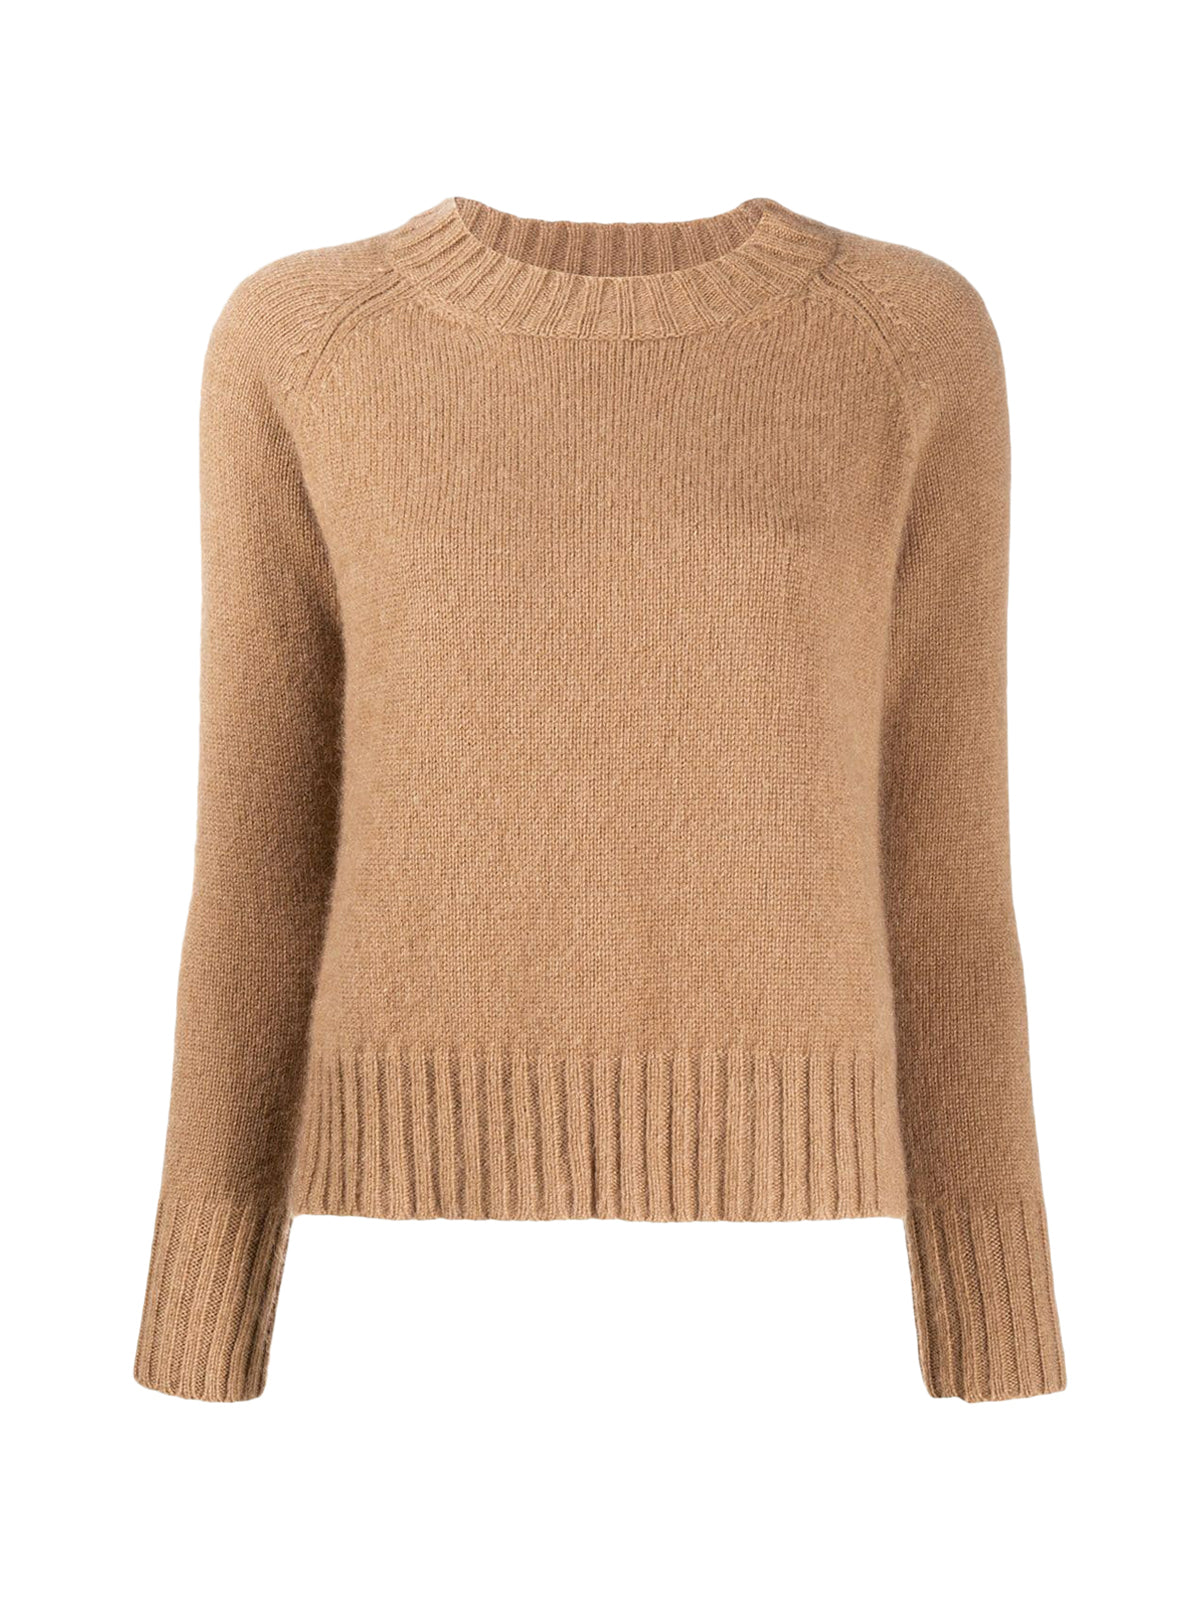 Caio Sweater